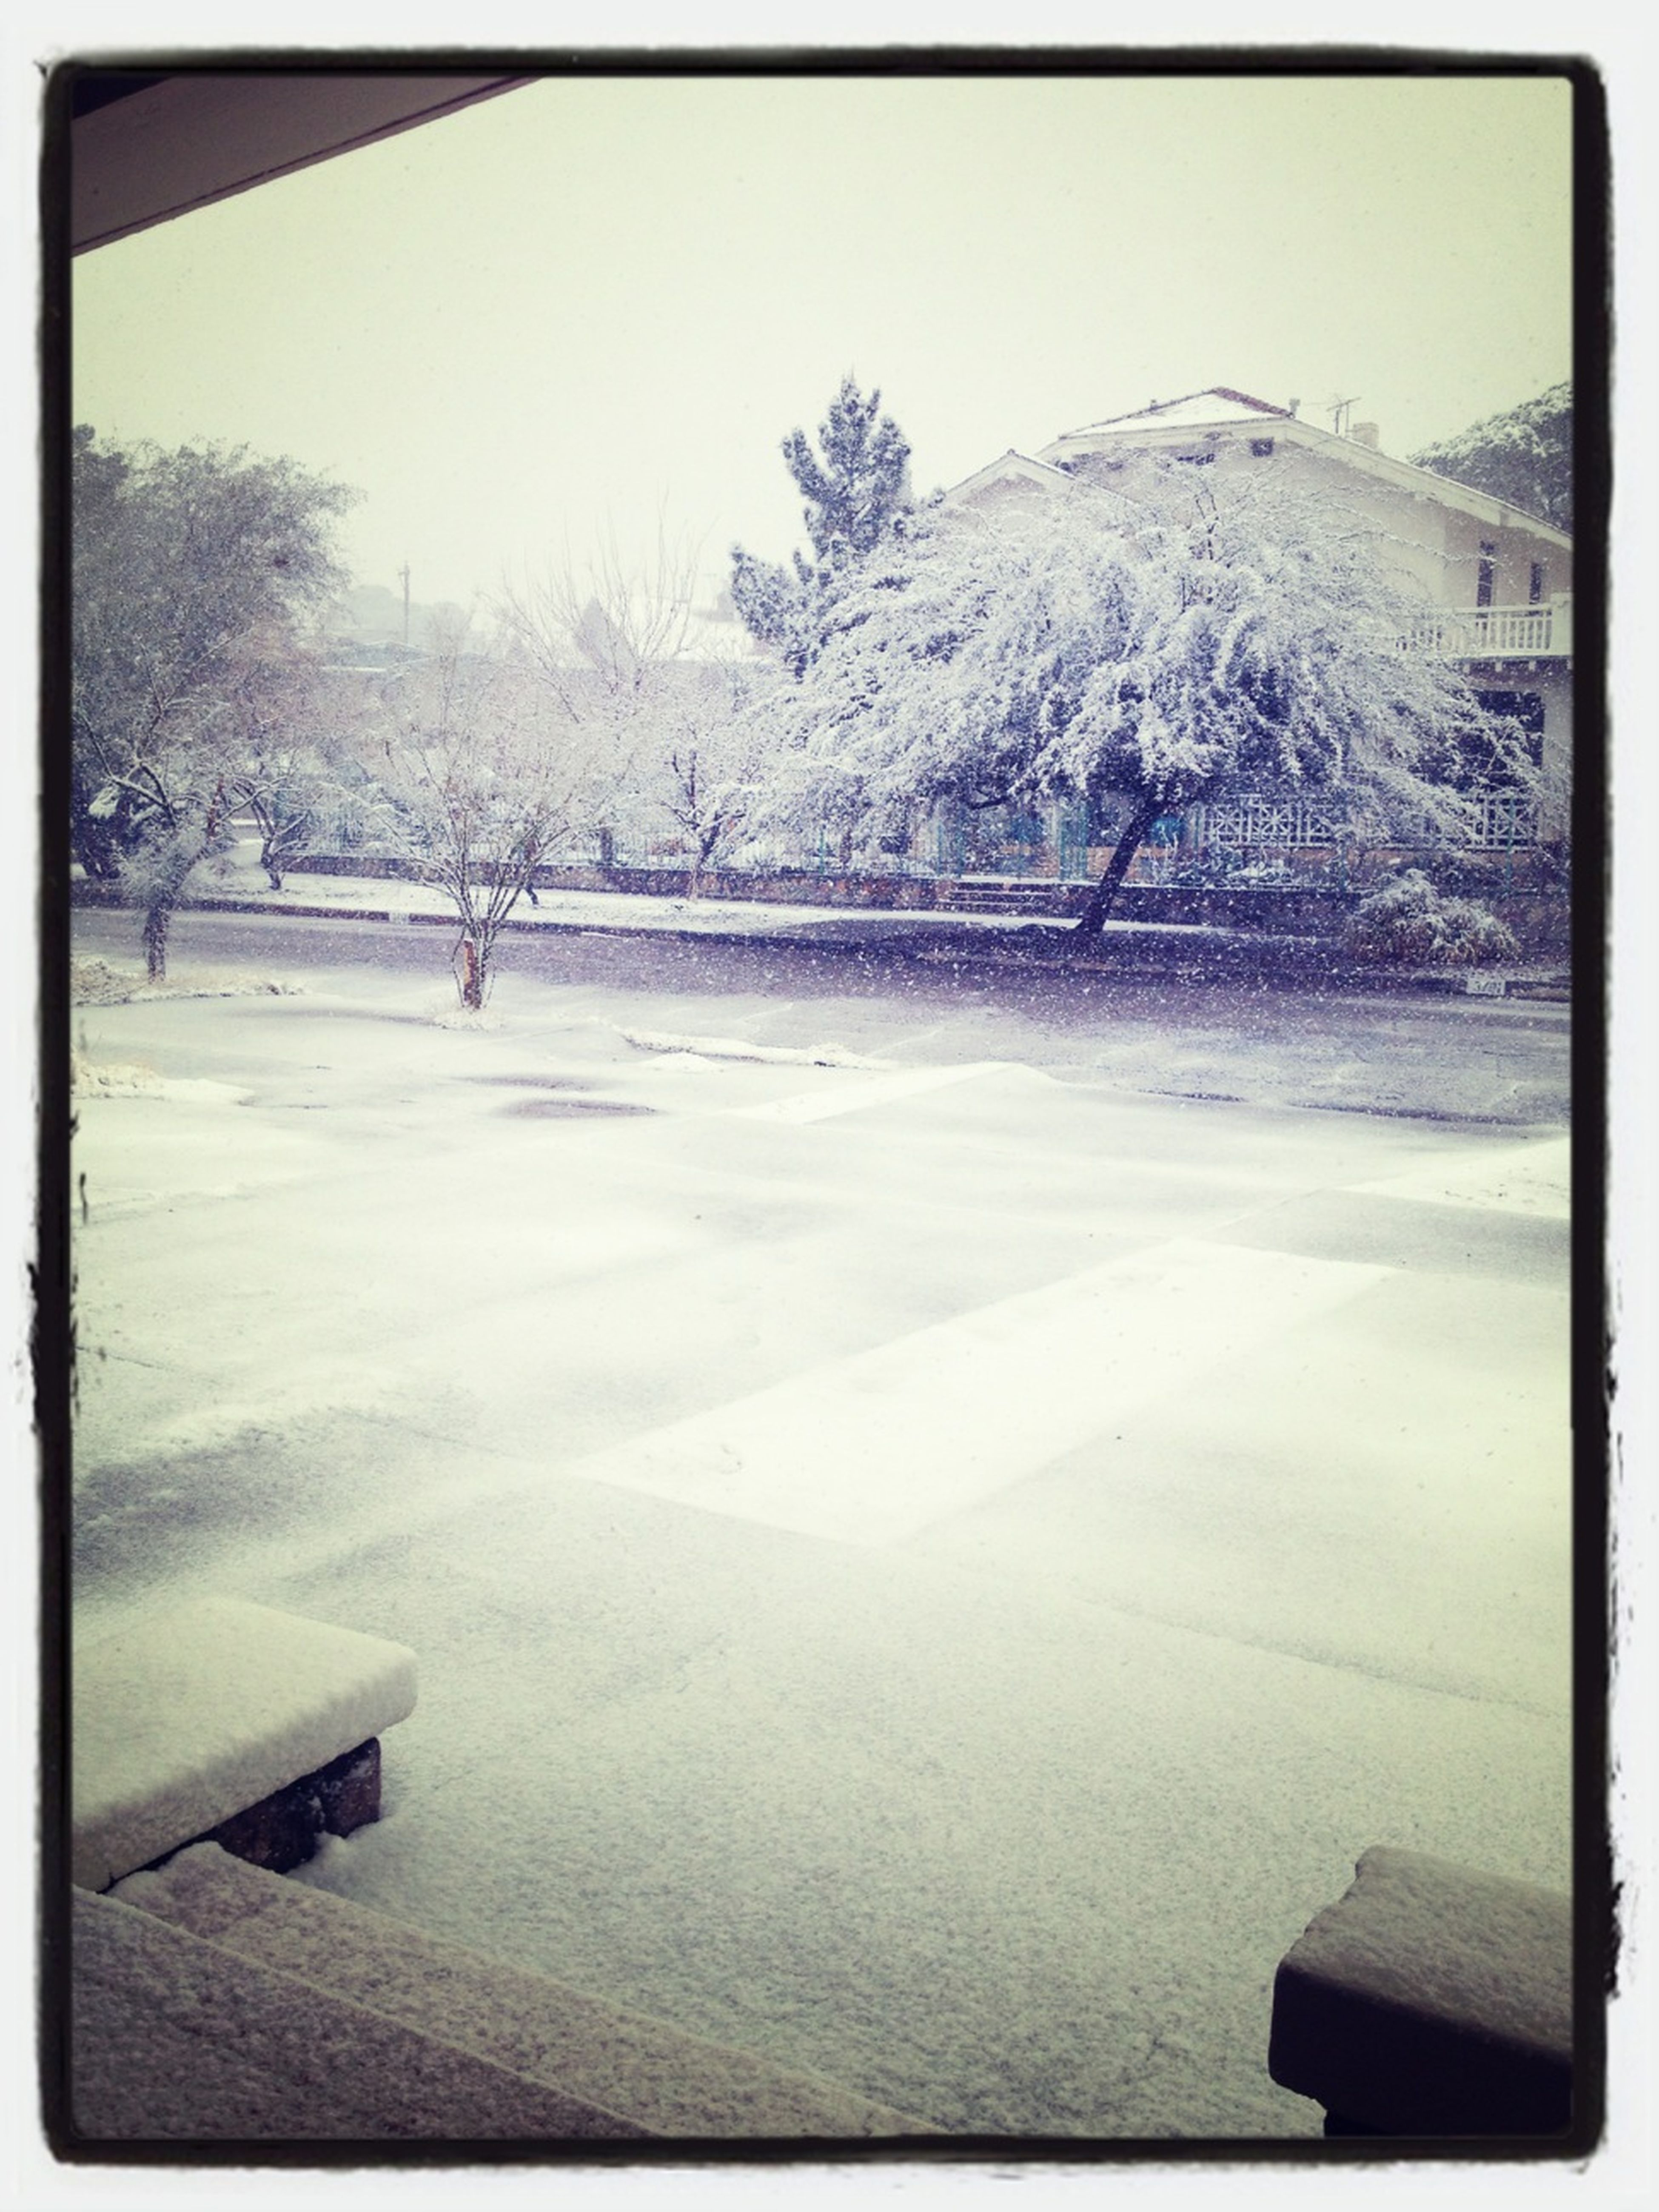 The Winter Snow At My House!!